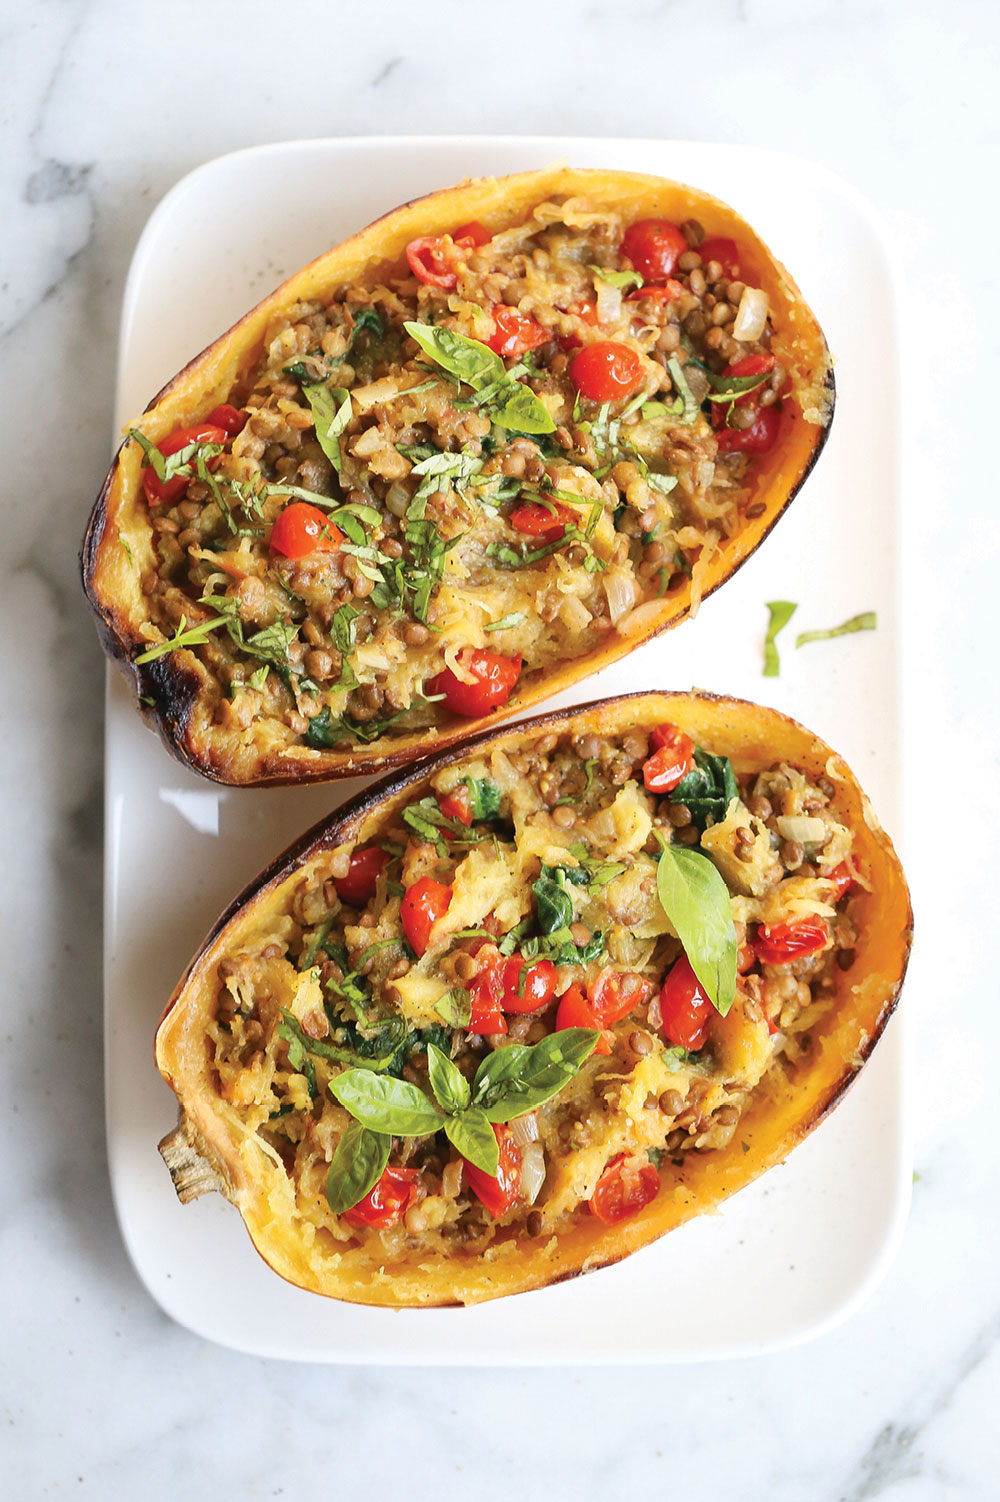 spaghetti-squash-boats-with-green-lentils-deliciously-ella-pure-ella-leche4